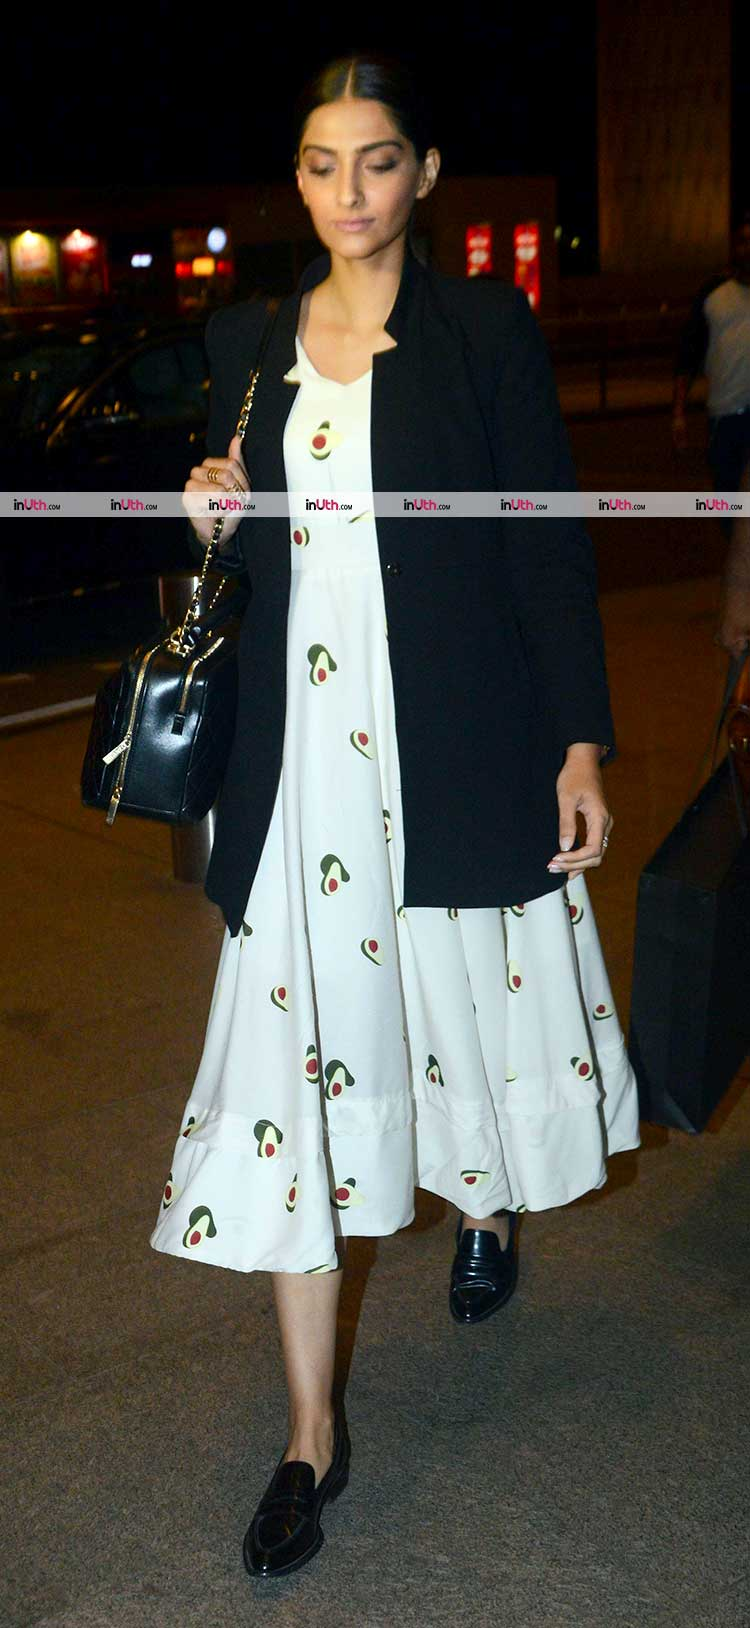 Sonam Kapoor leaving to Delhi for Veere Di Wedding